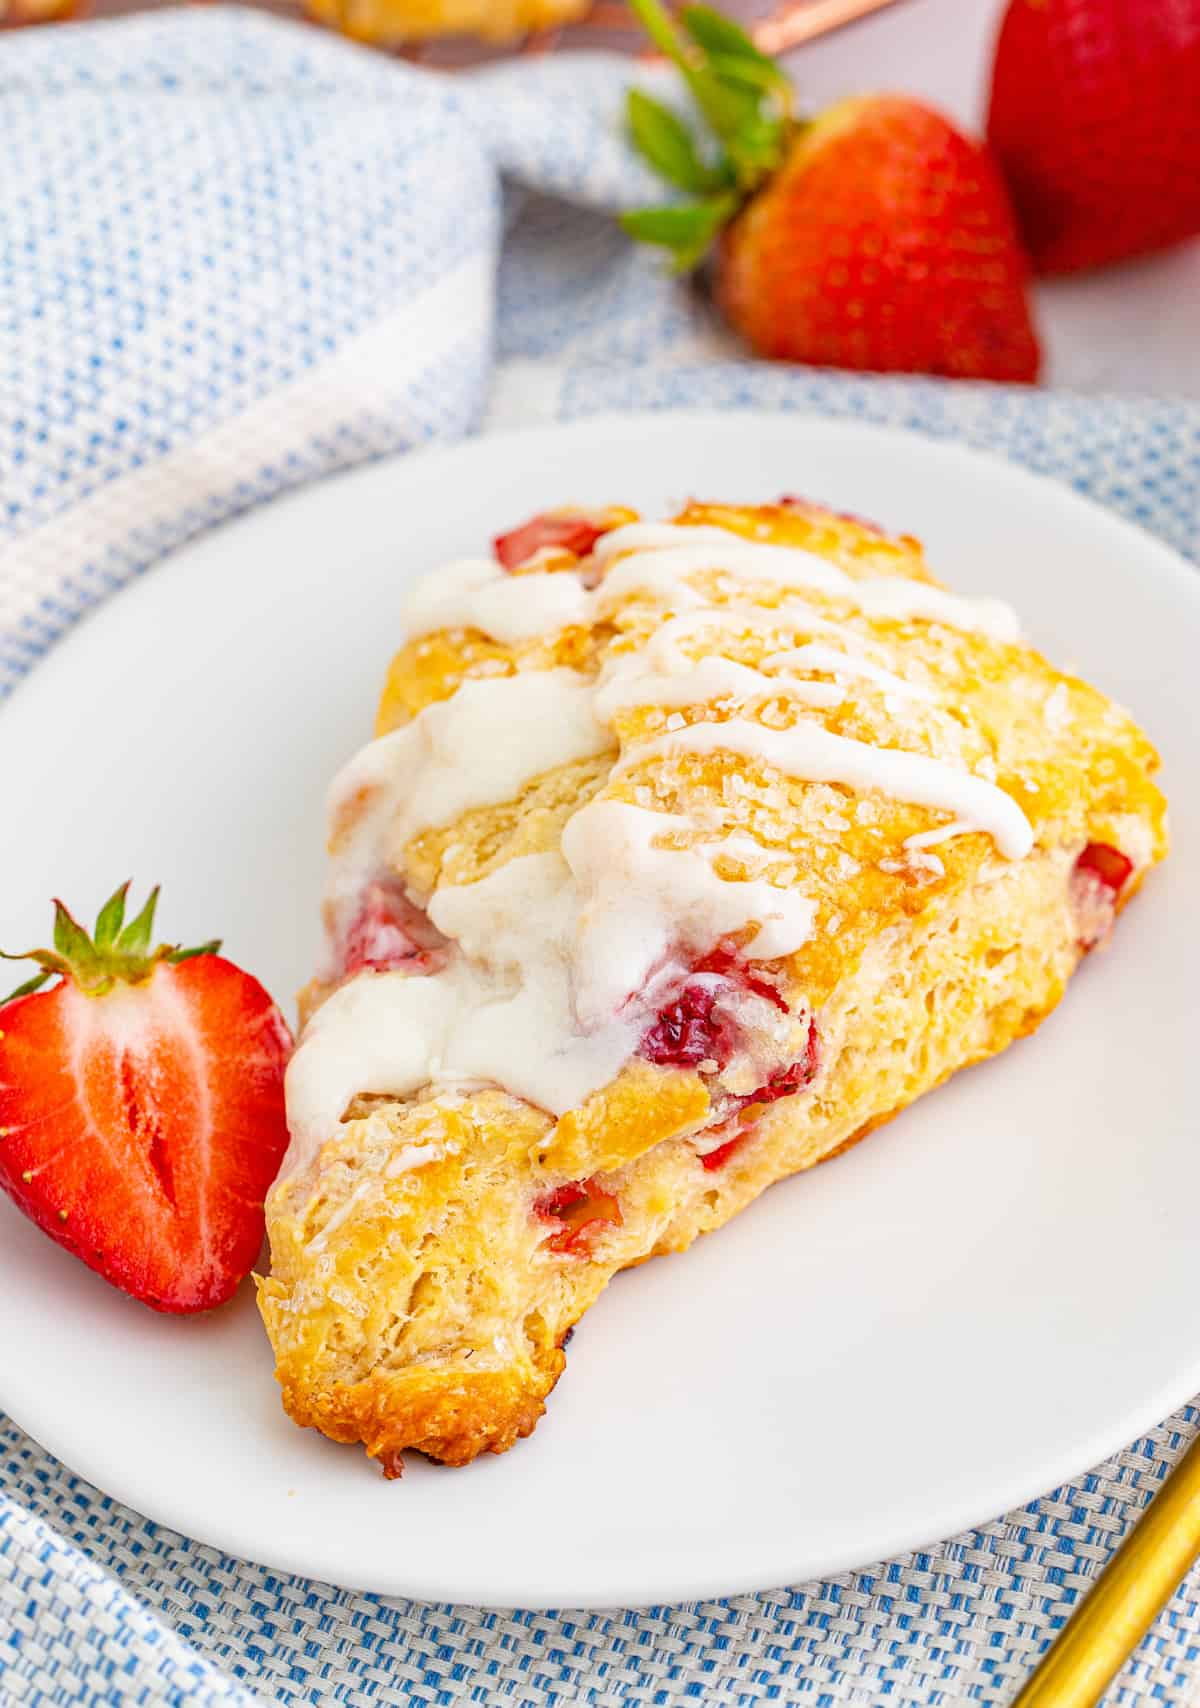 One Strawberry Scone on white plate with half a strawberry